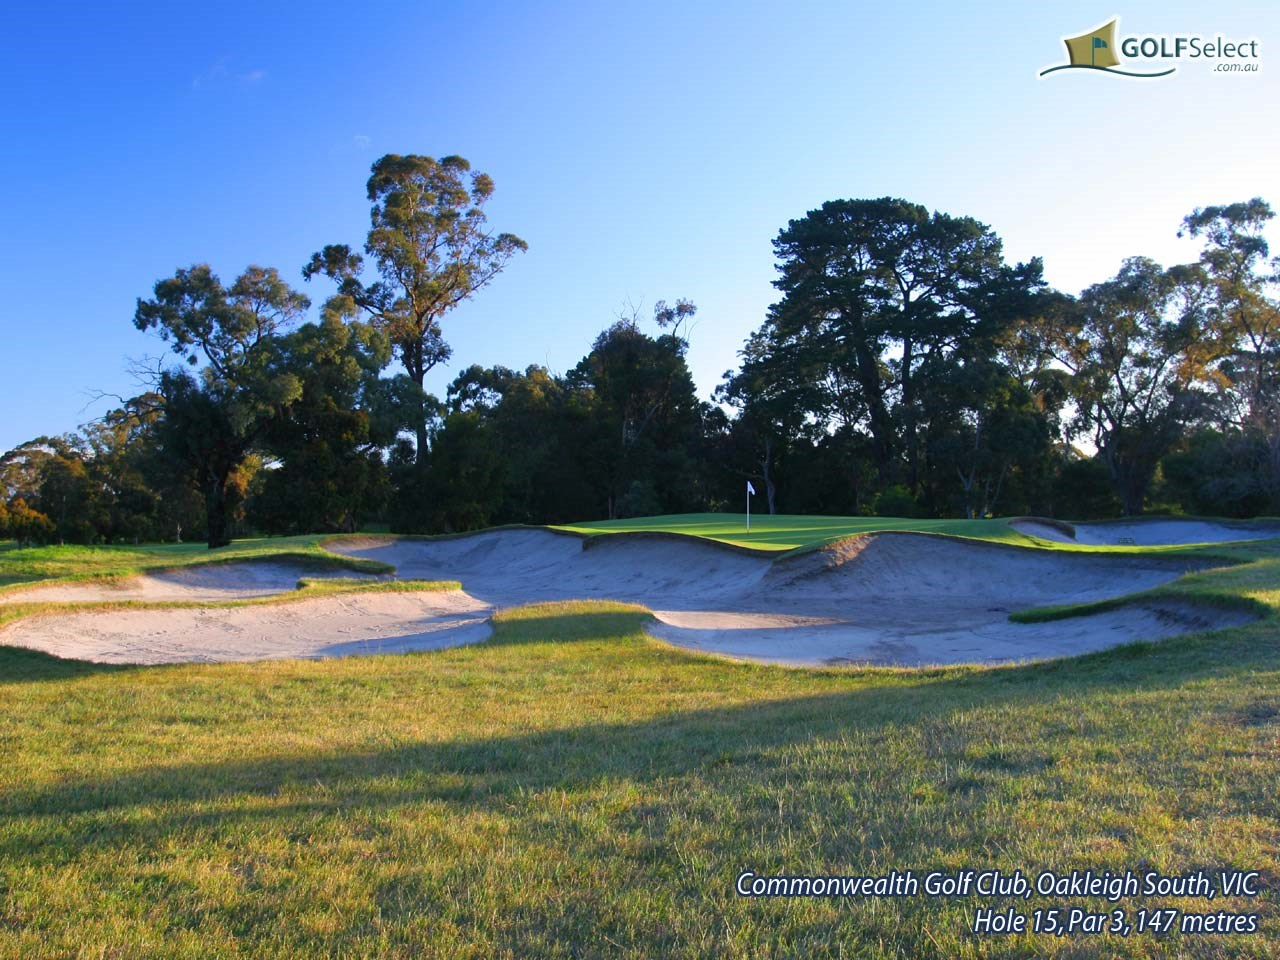 Commonwealth Golf Club Hole 15, Par 3, 147 metres